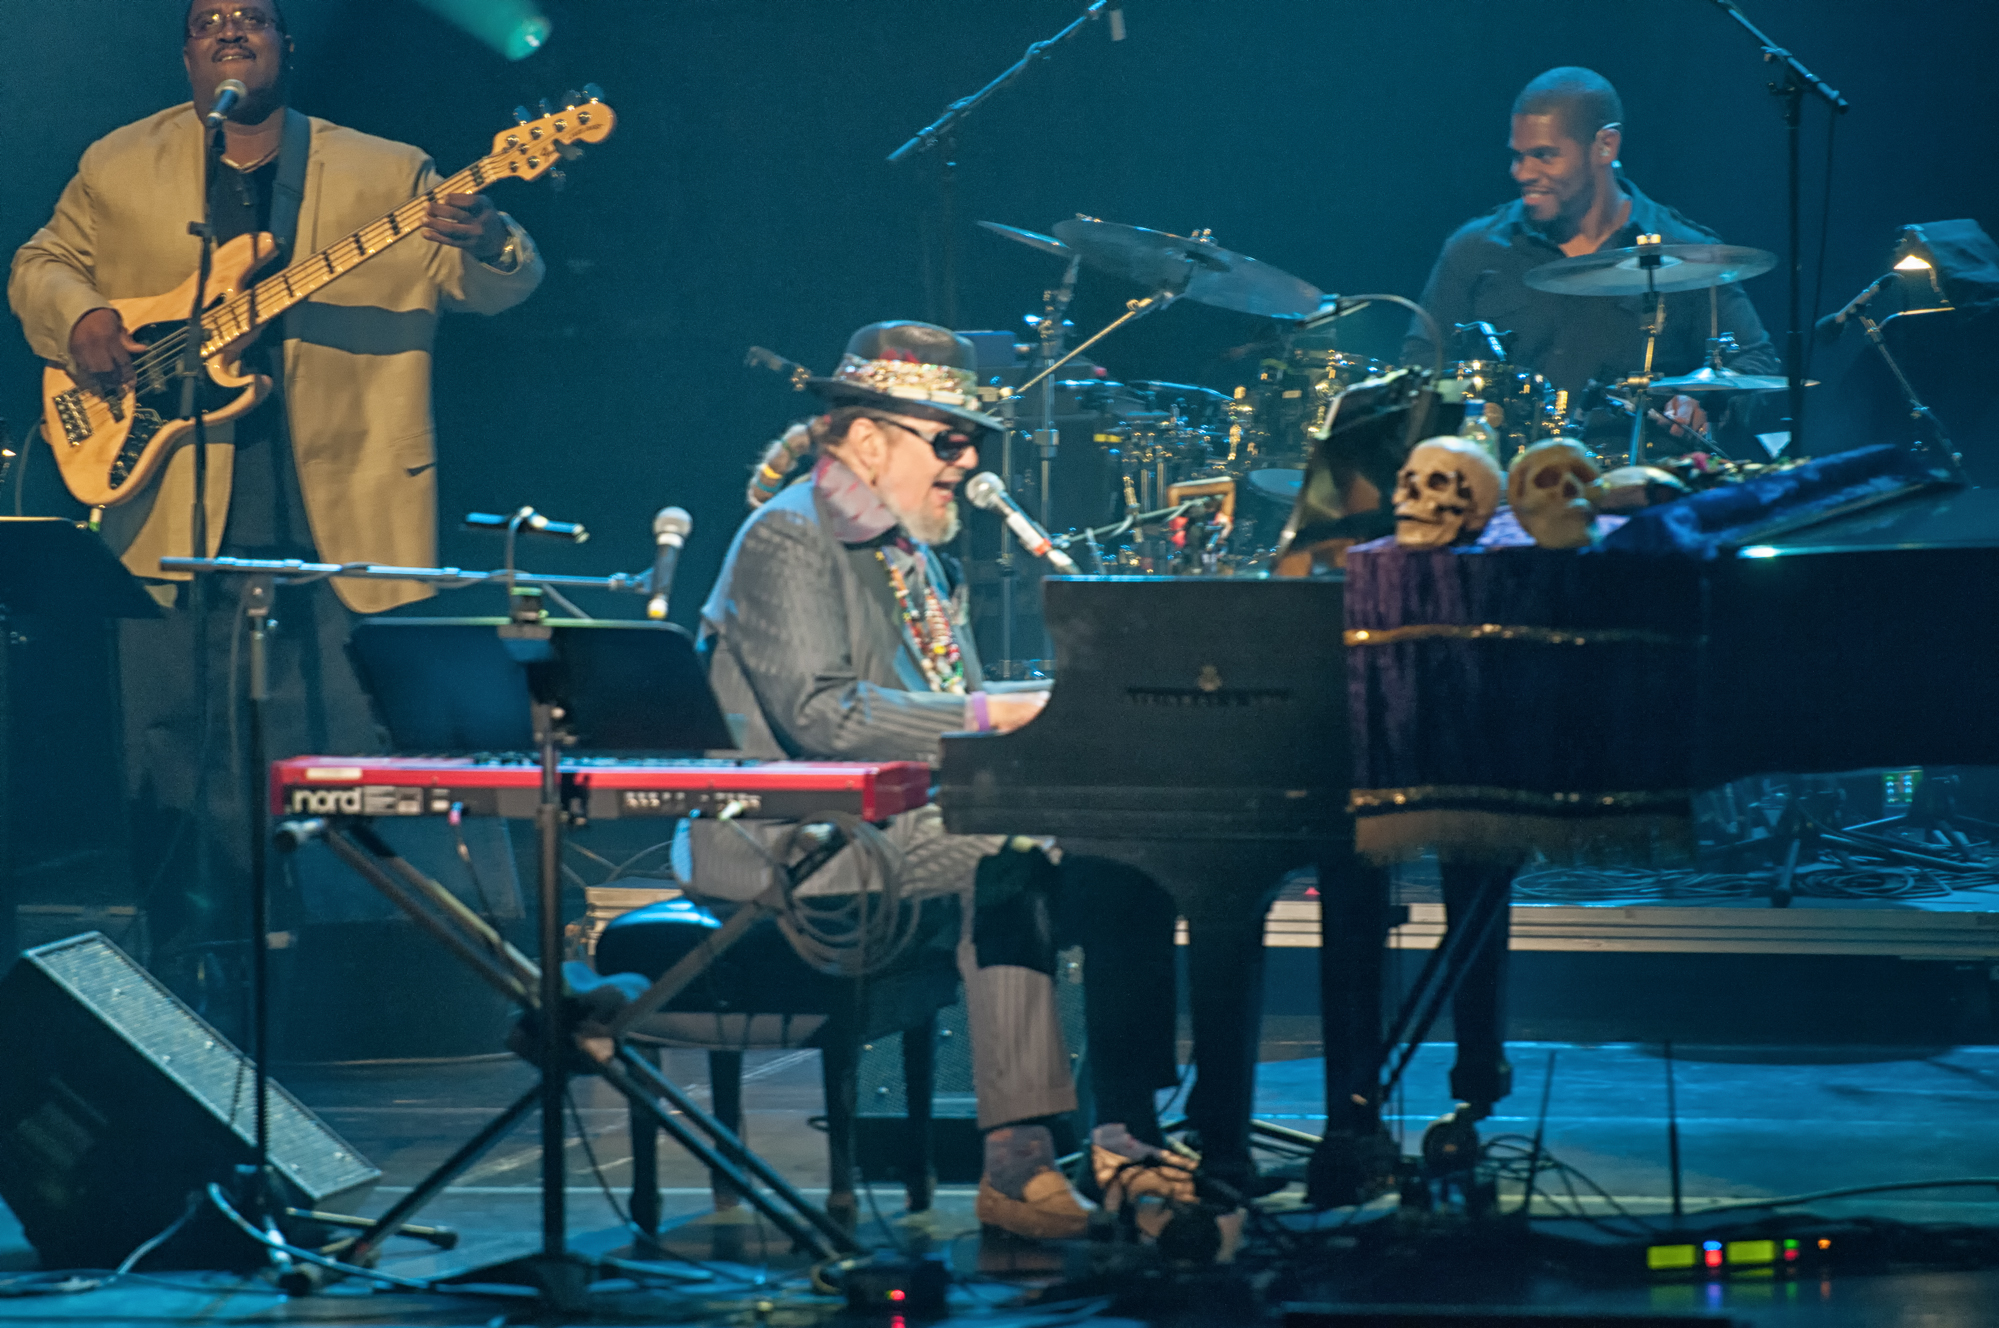 Dwight bailey, dr. john and ben brown with dr. john and the nite trippers at the montreal international jazz festival 2013